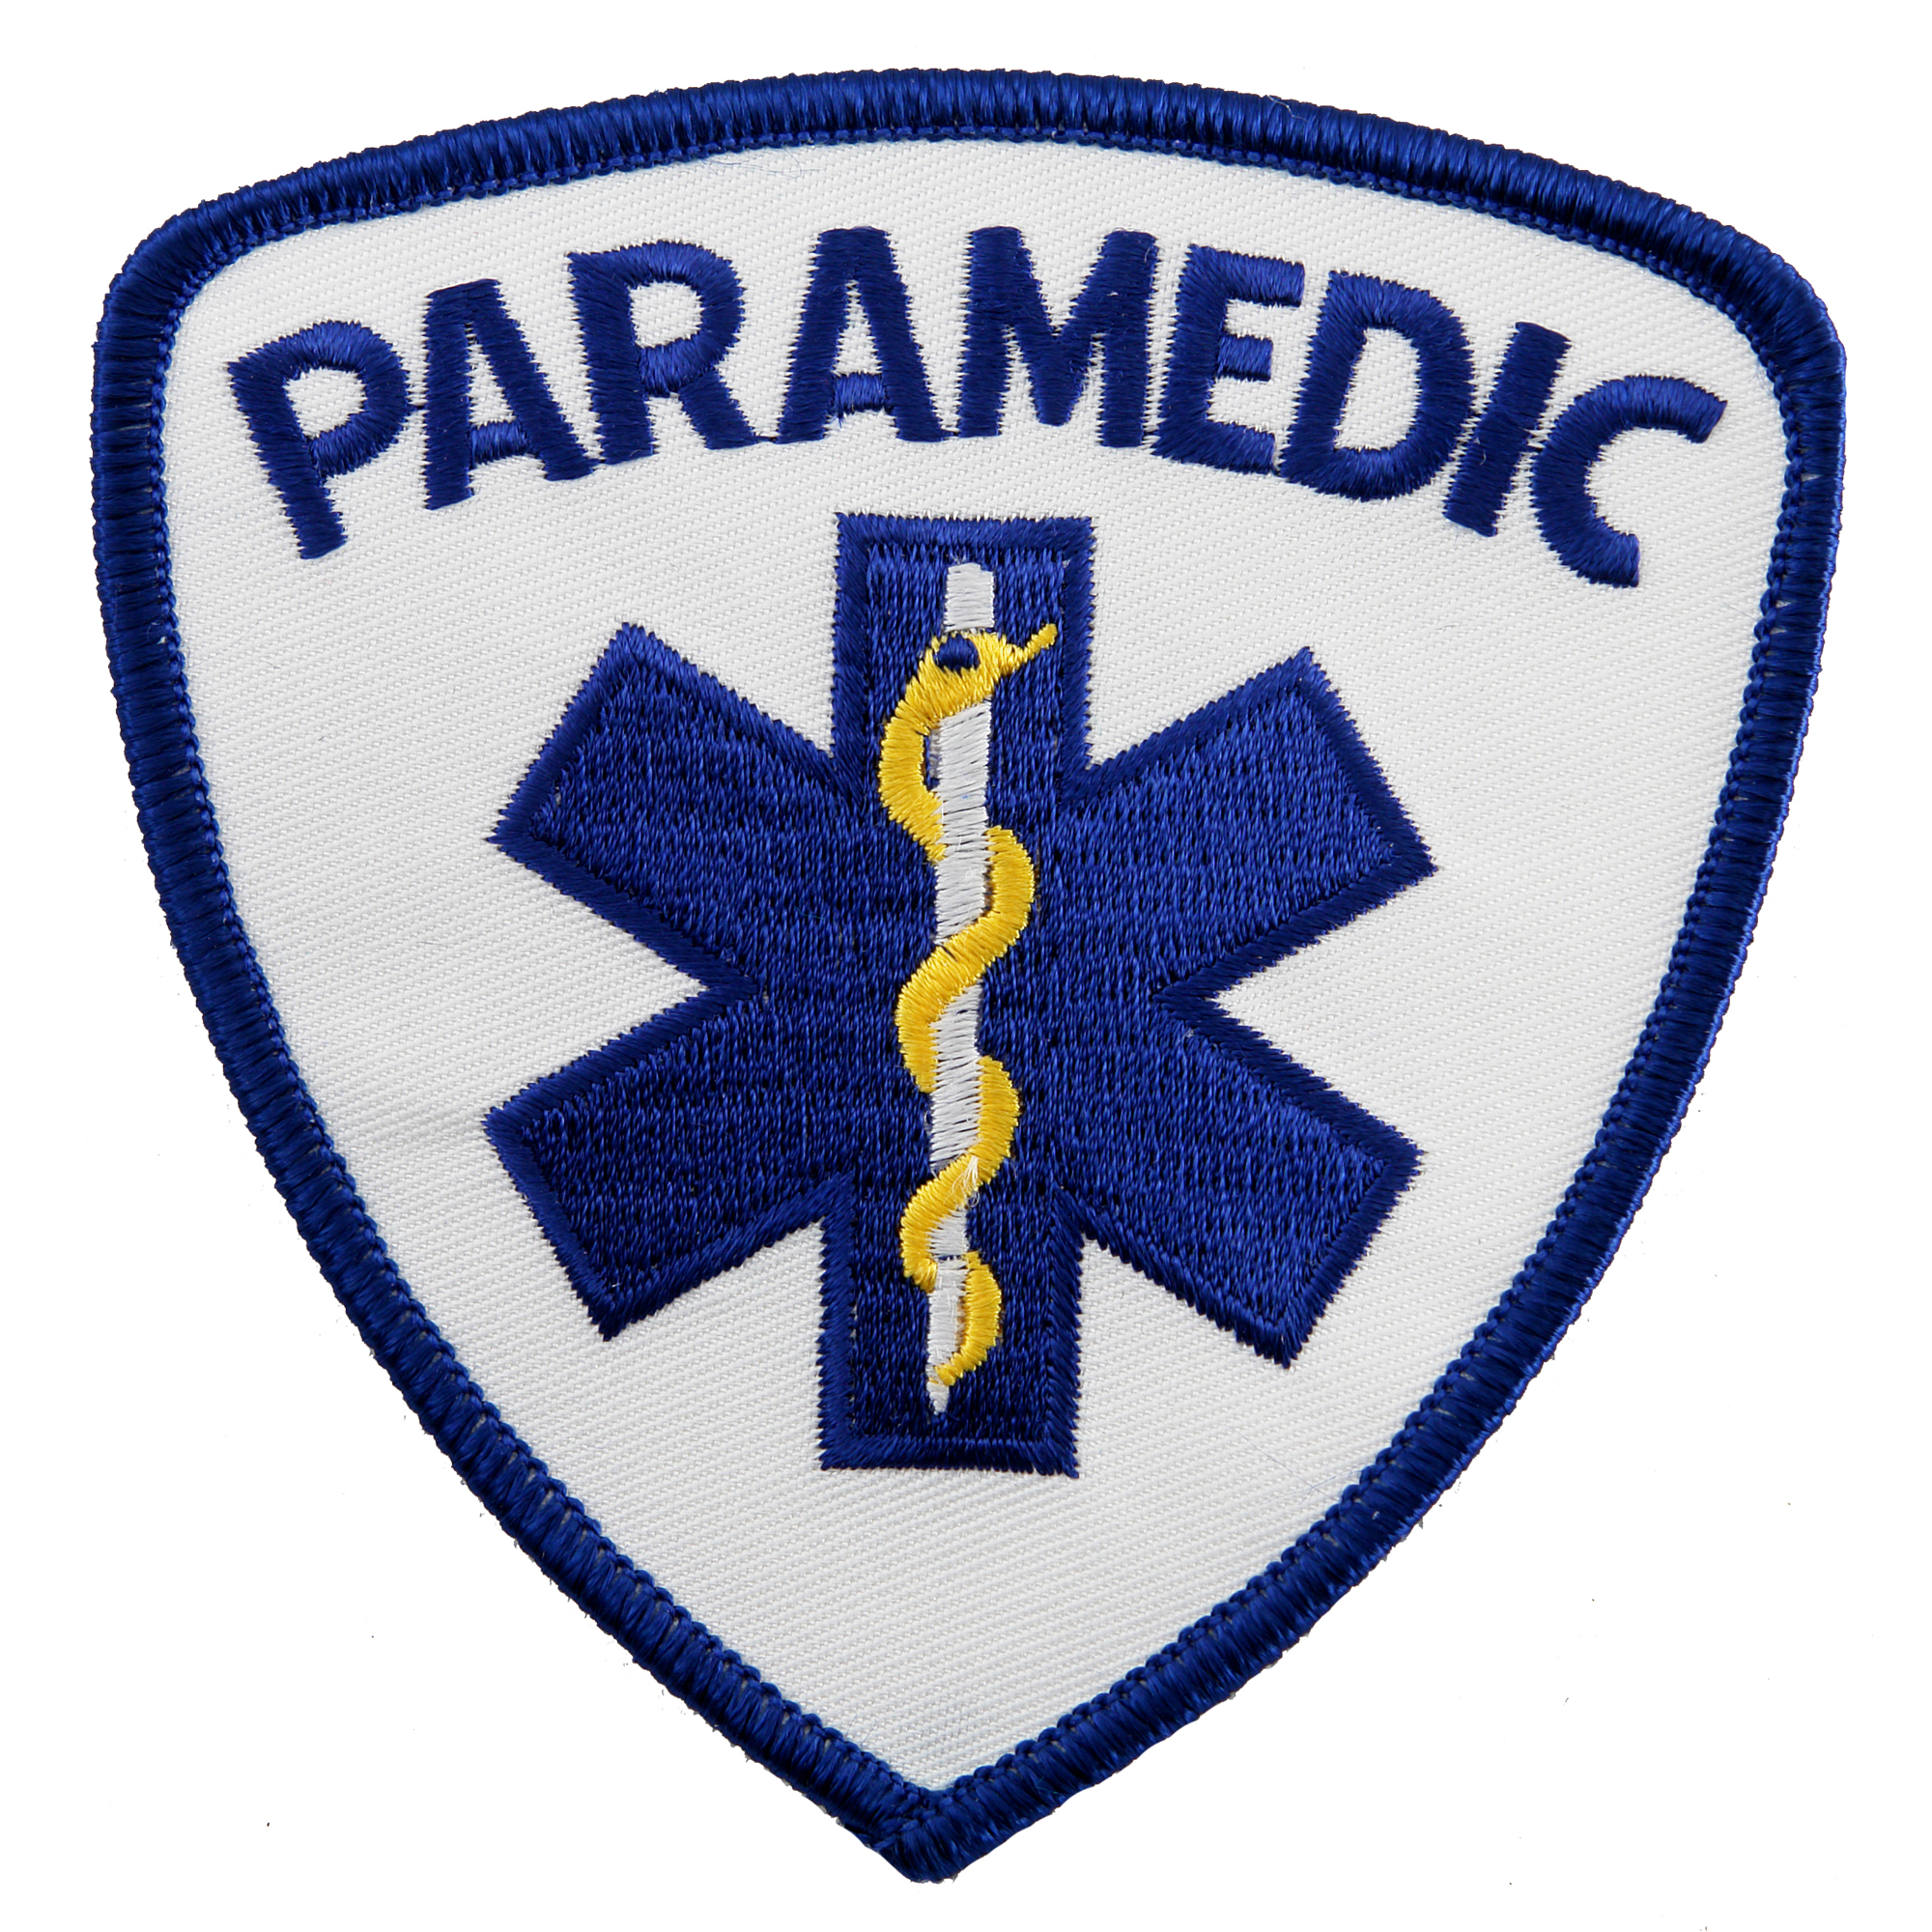 Paramedic Star of Life EMT Uniform Iron-on Embroidered Patch